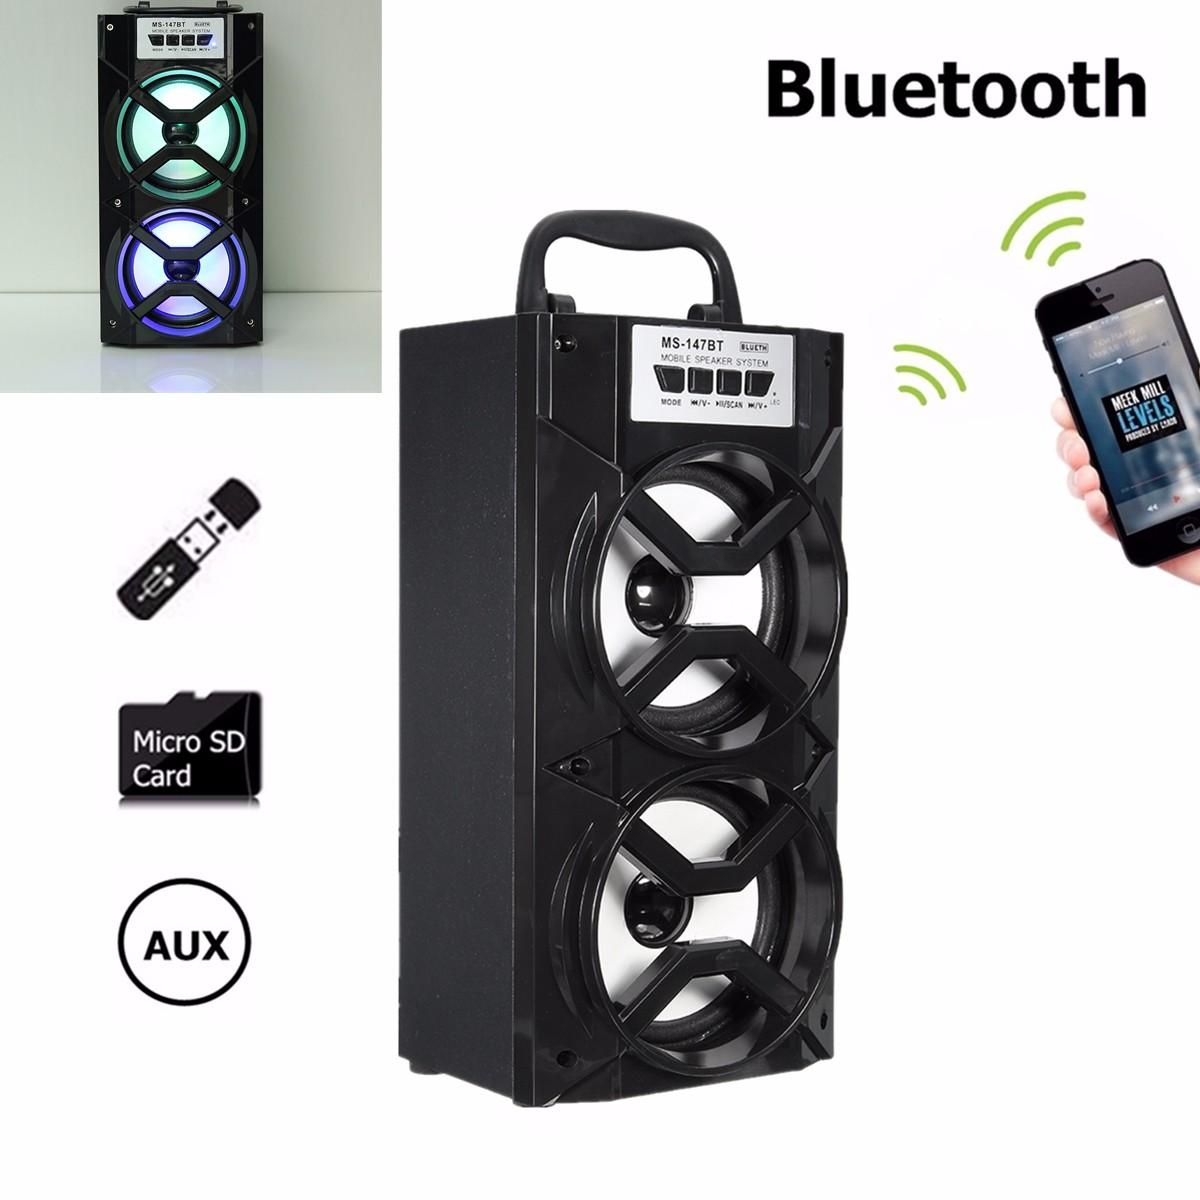 MS-147BT Tragbarer Outdoor Bluetooth Wireless Super Bass Lautsprecher USB TF AUX FM Radio